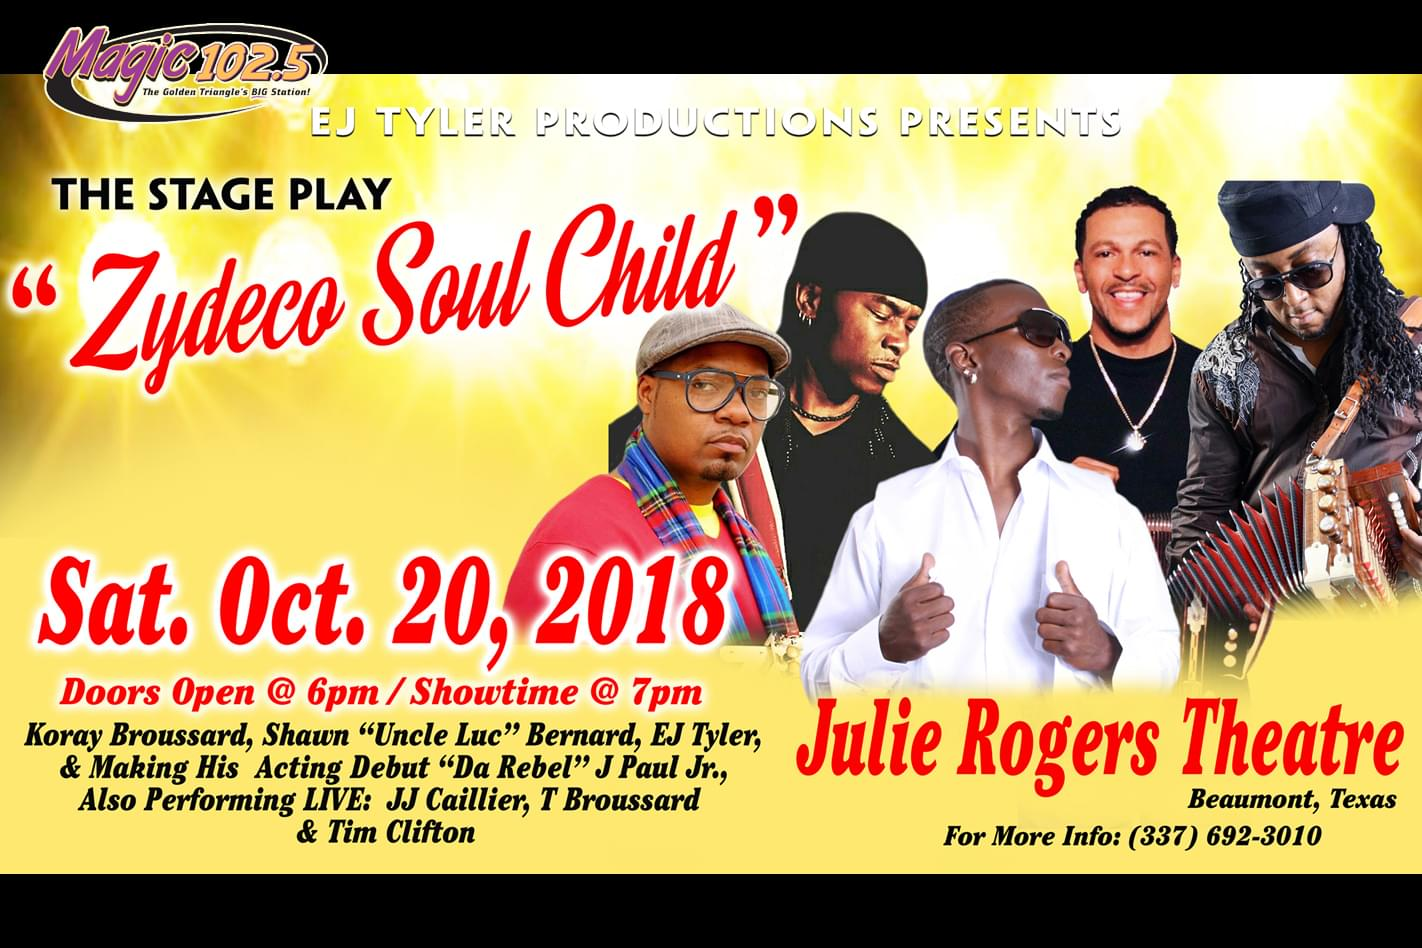 Zydeco Soul Child October 20 at the Julie Rogers Theatre